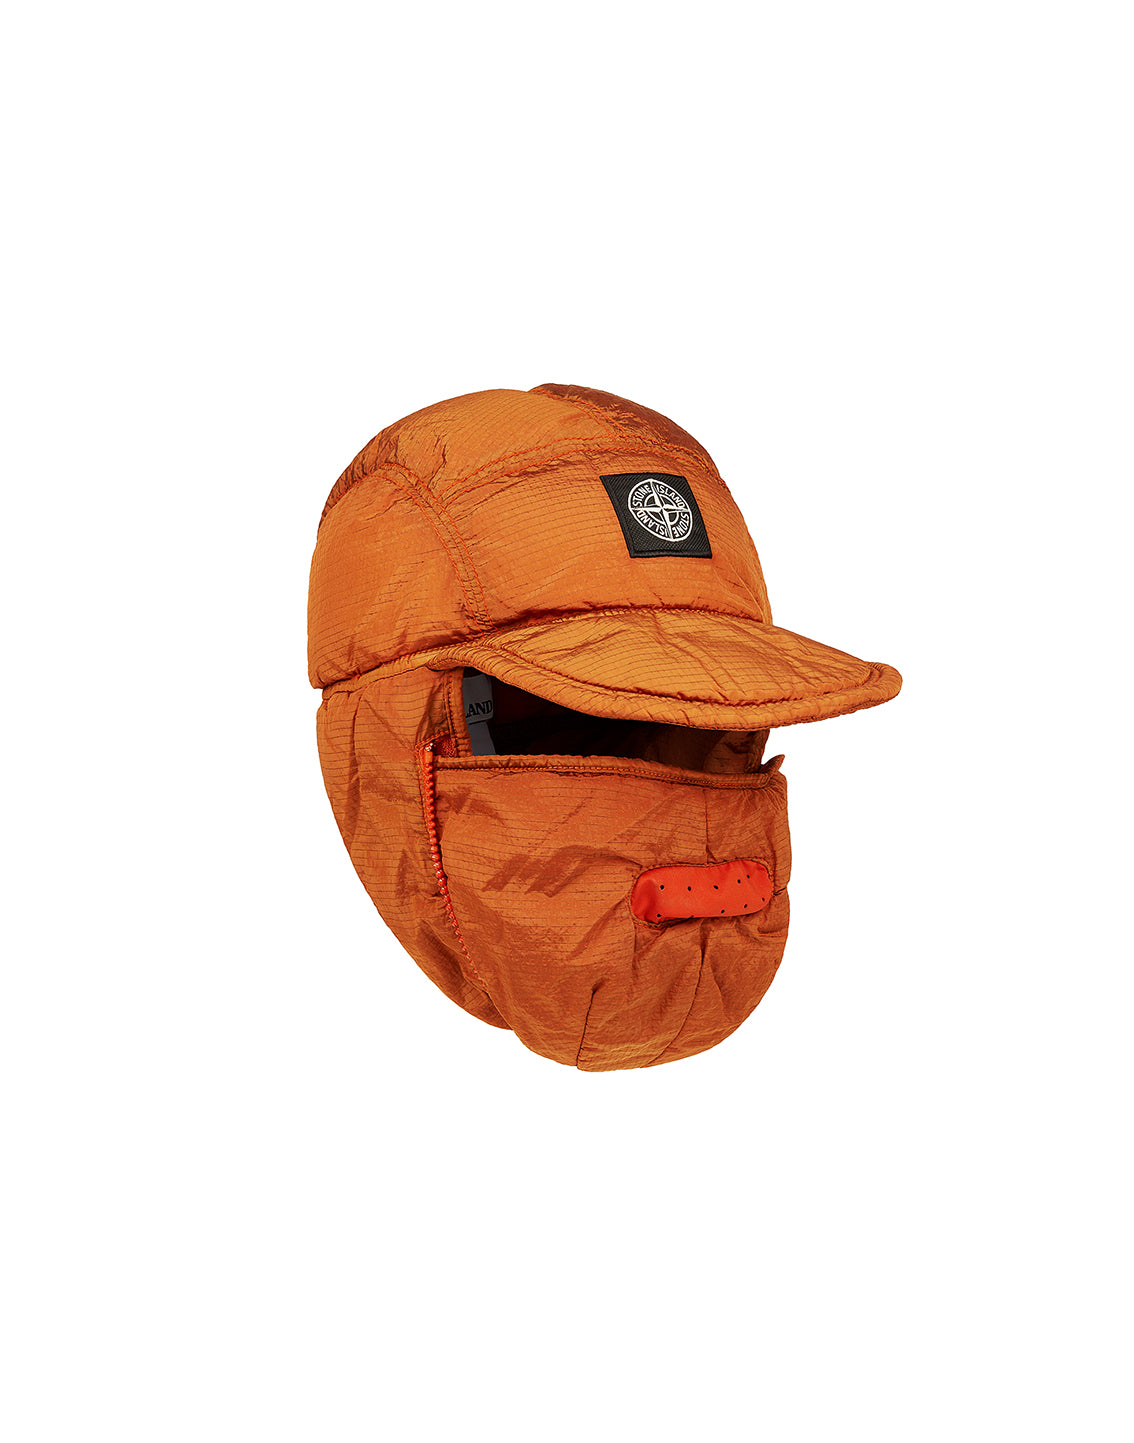 99432 NYLON METAL WATRO RIPSTOP DOWN-TC Hat in Orange